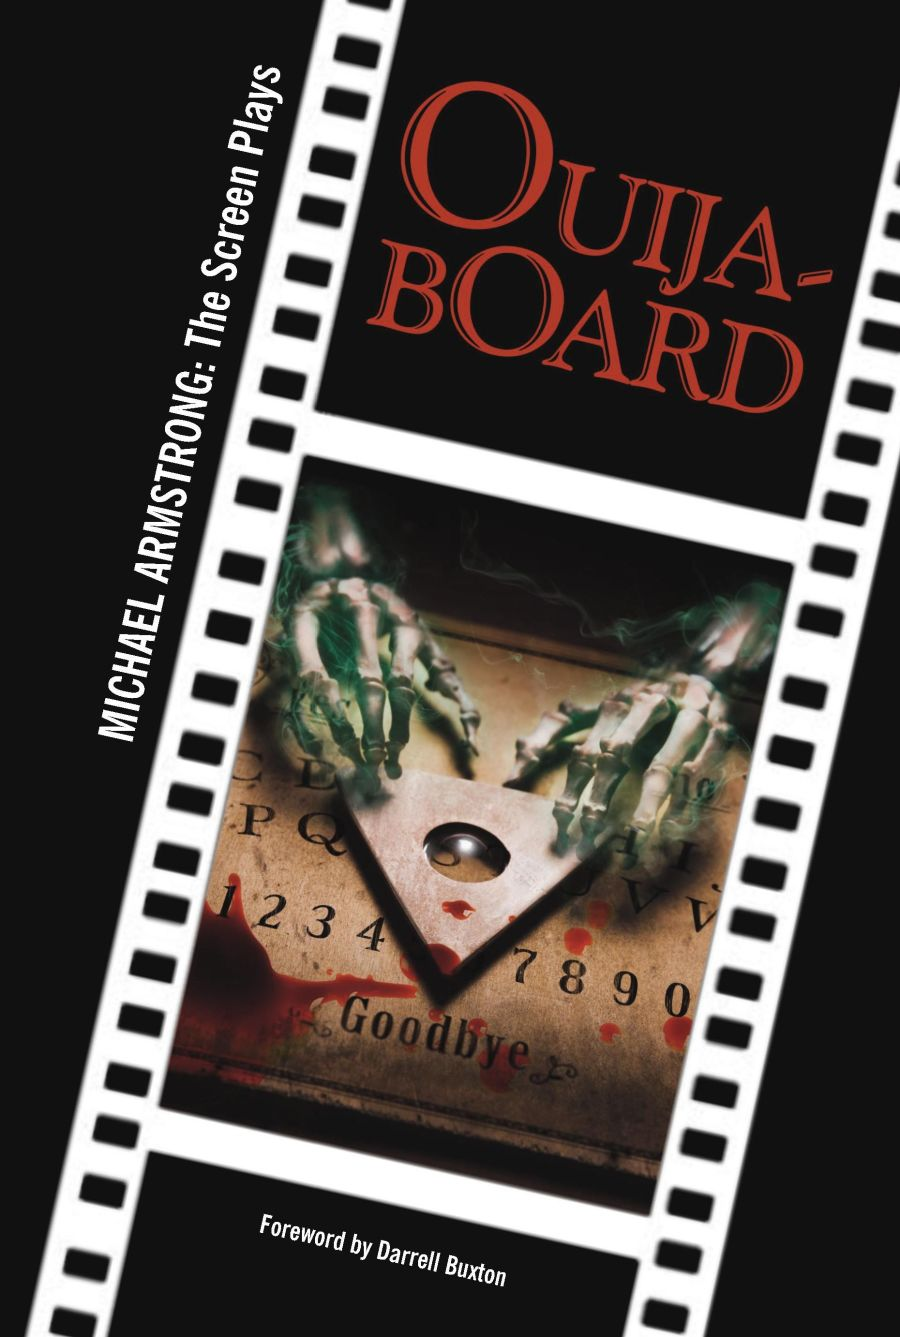 Ouija-board - Screen Play (Paperback)